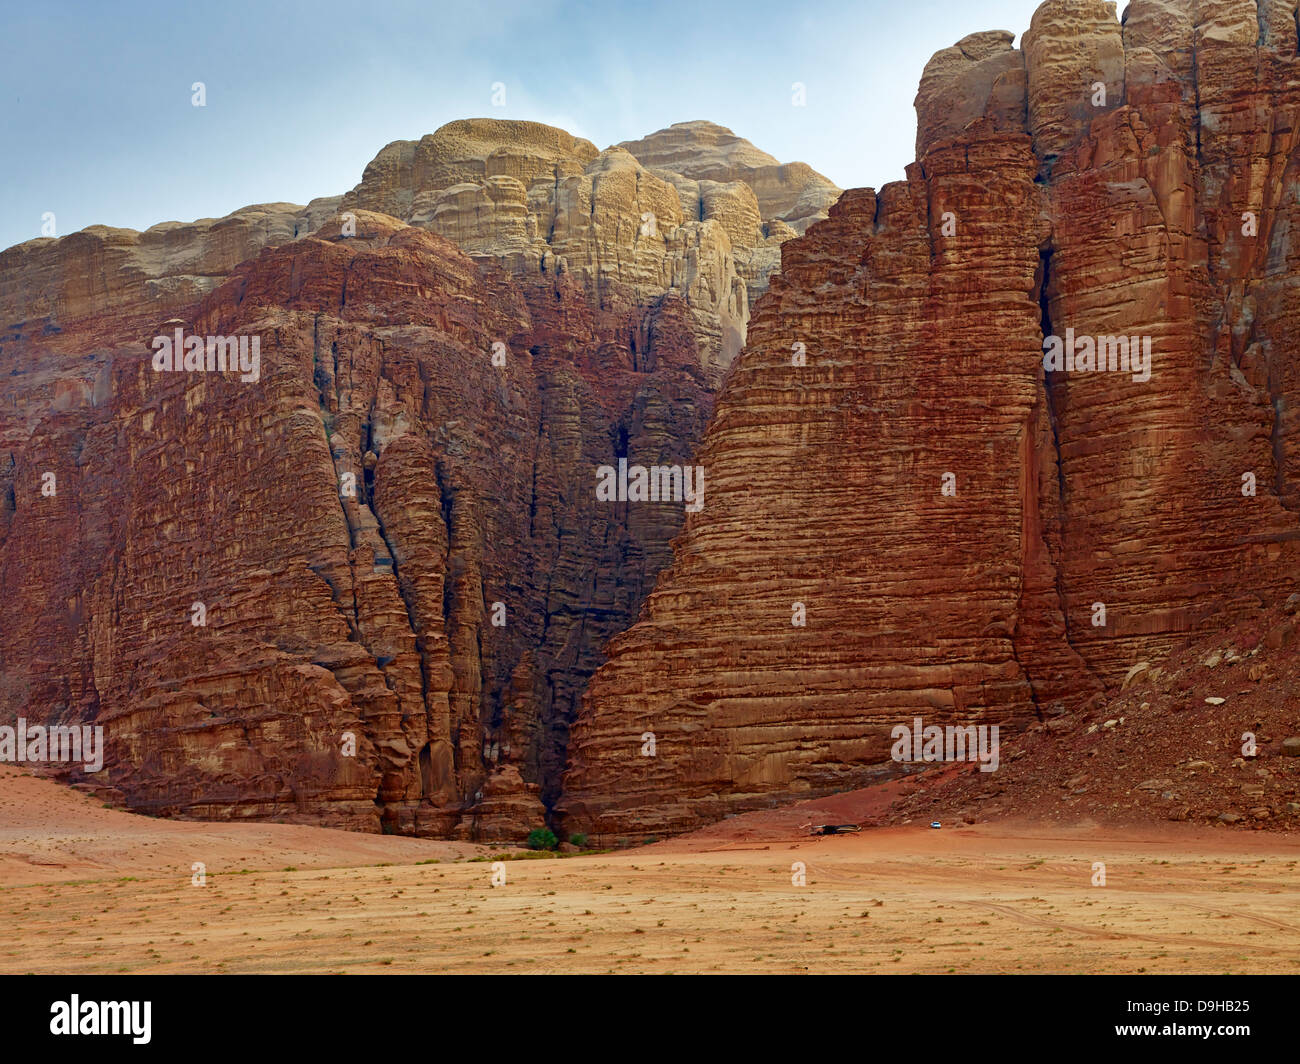 Entrance to Khazali canyon in Wadi Rum, Aqaba, Jordan, Middle East - Stock Image